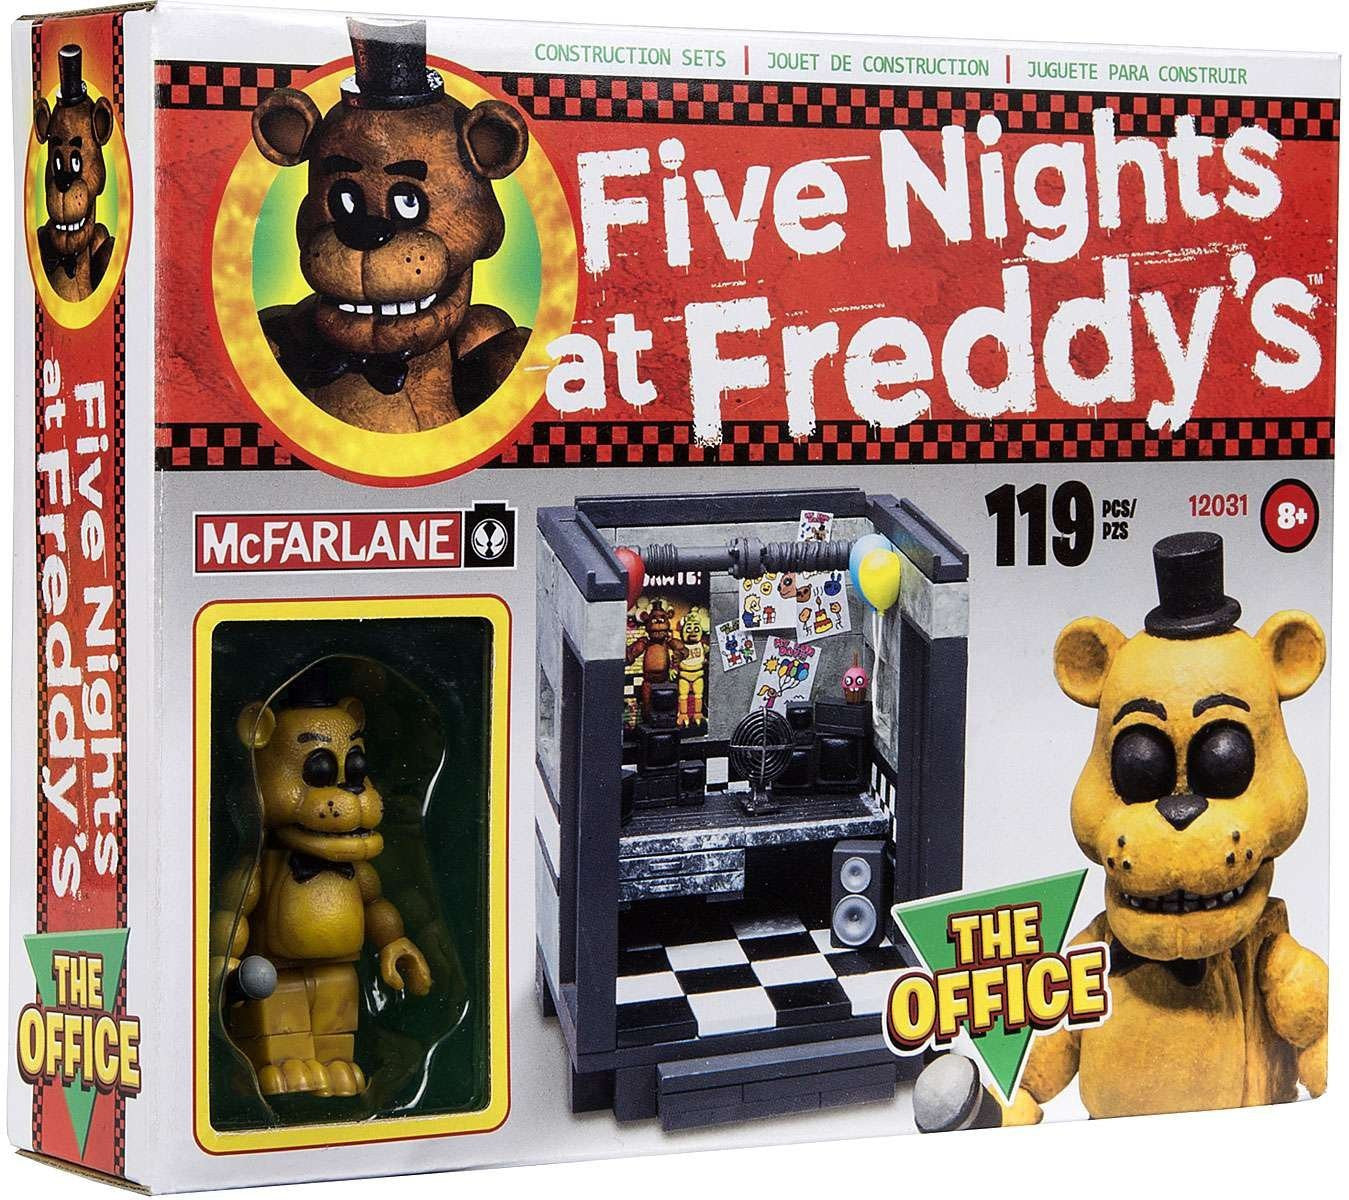 McFarlane Construction Set - Five Nights at Freddy's The Office with Golden Freddy Figure (12031)